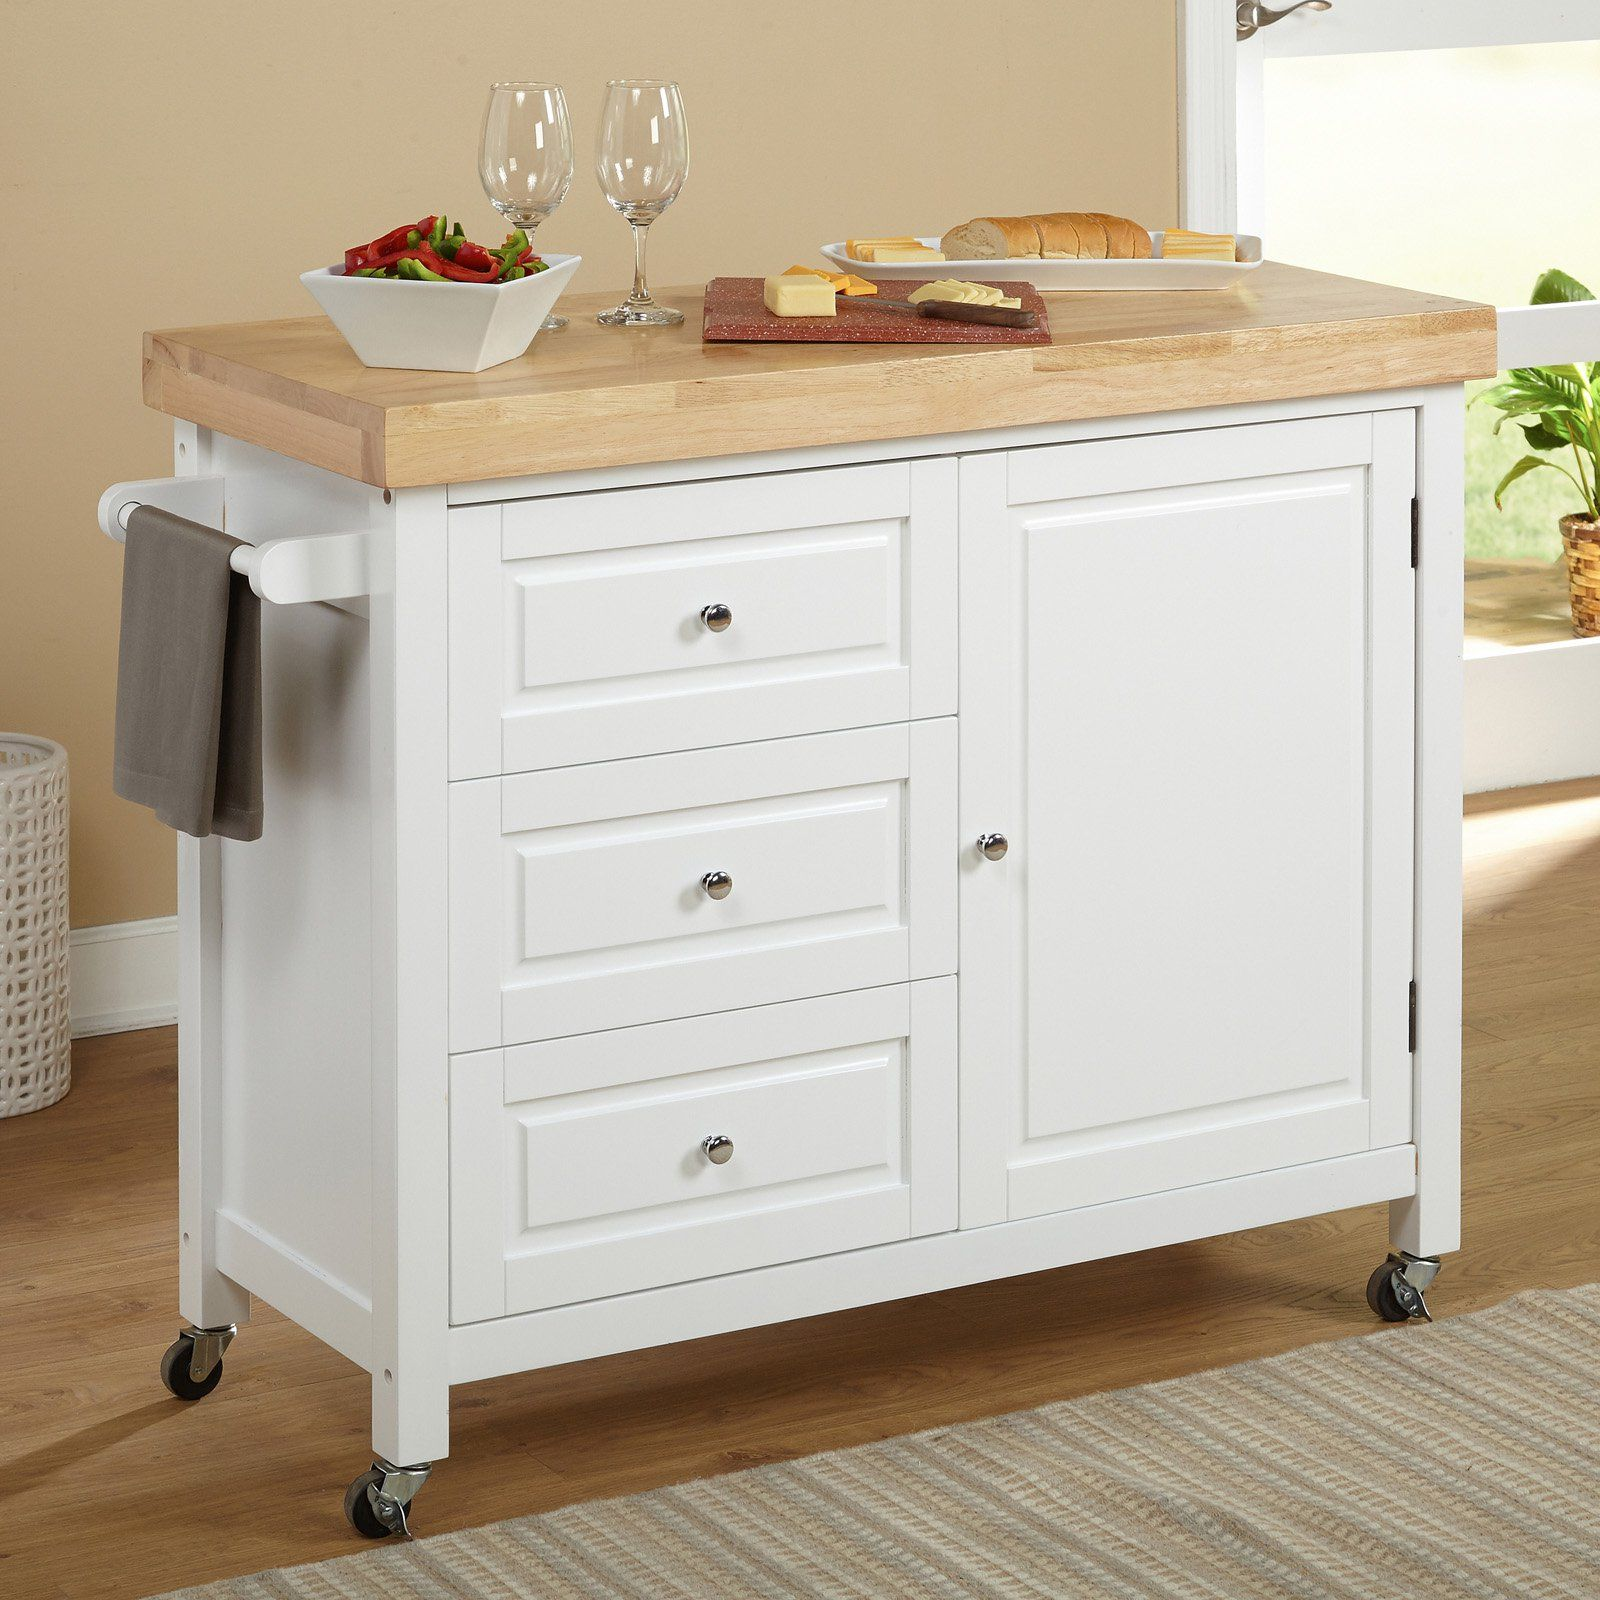 Target marketing systems monterey kitchen cart from hayneedle com